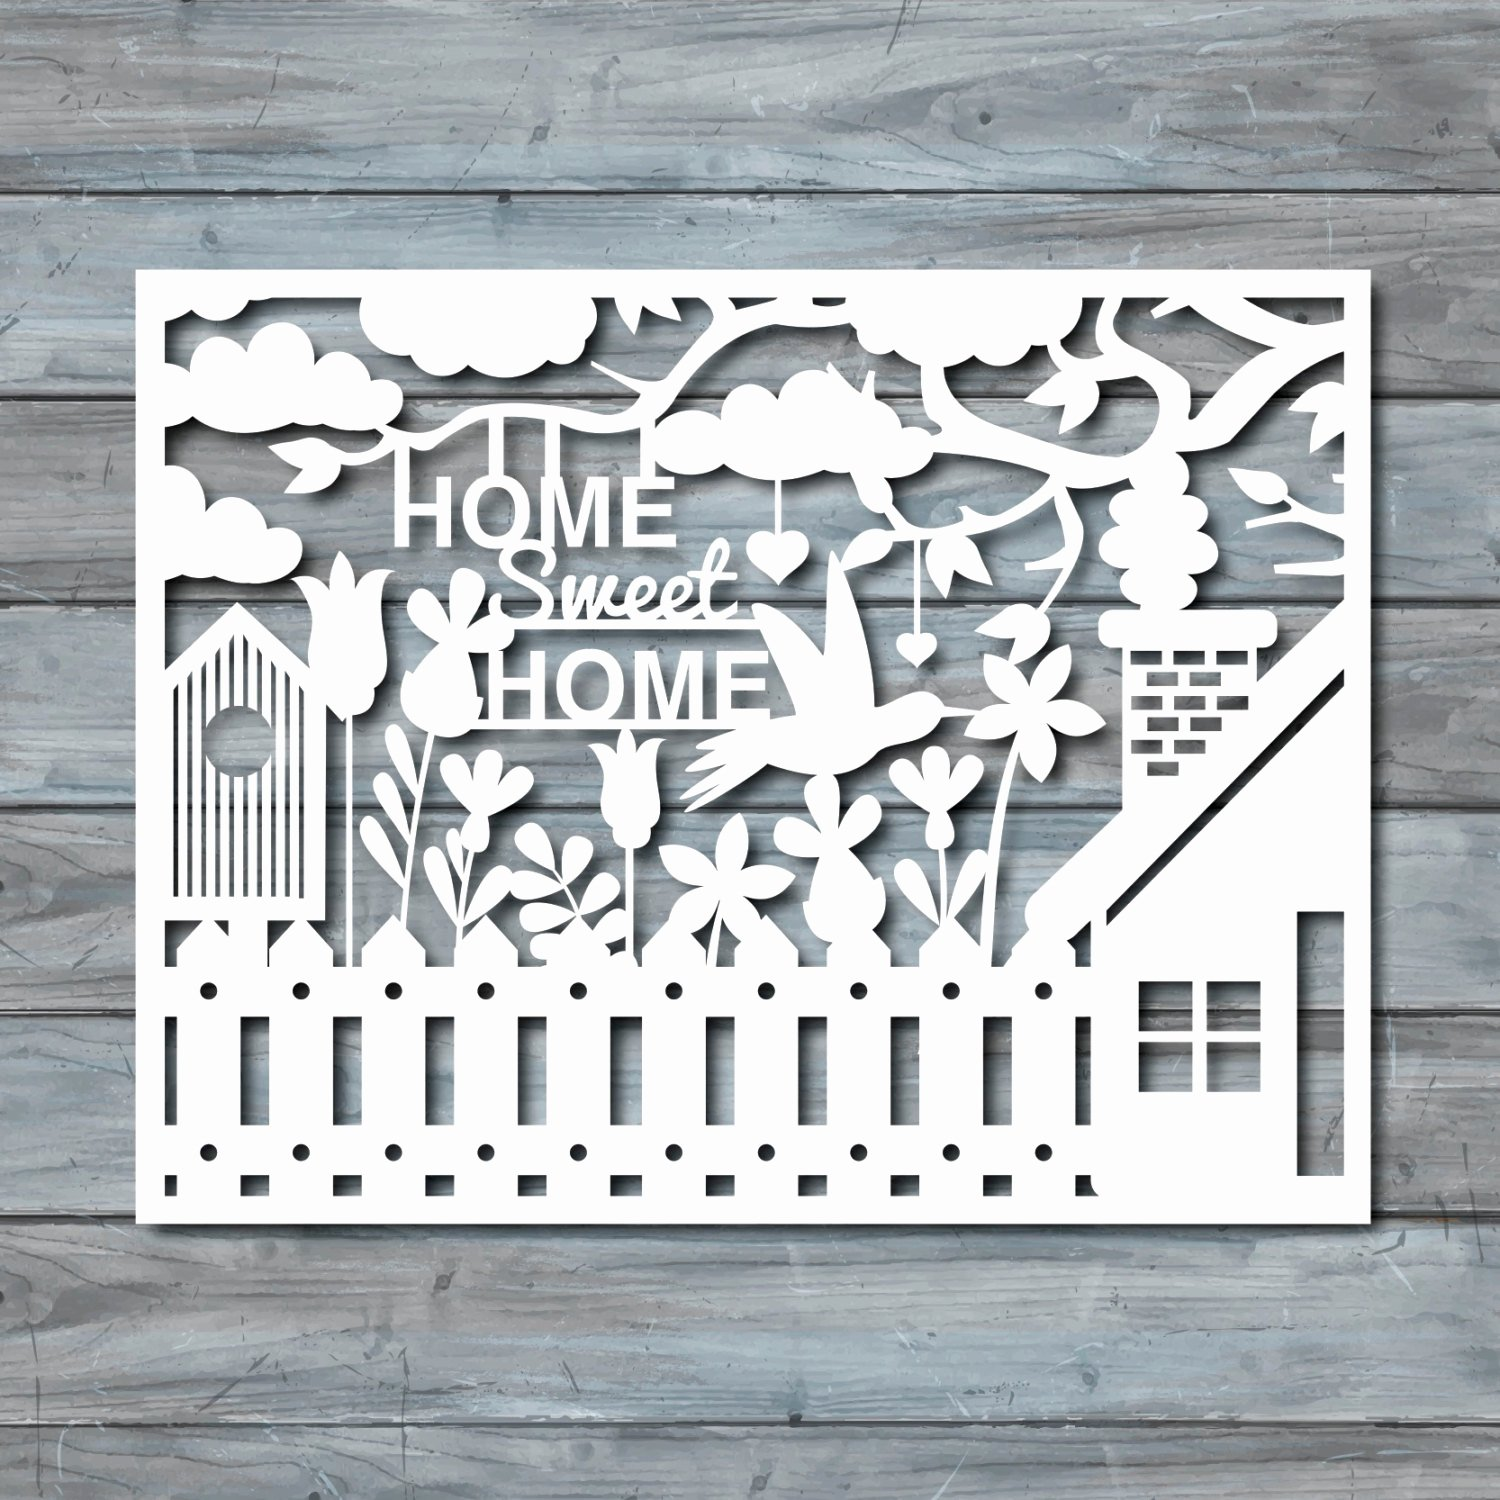 Paper Cutting Designs Template Awesome Home Sweet Home Paper Cut Template Pdf Printable by Zavyanne8